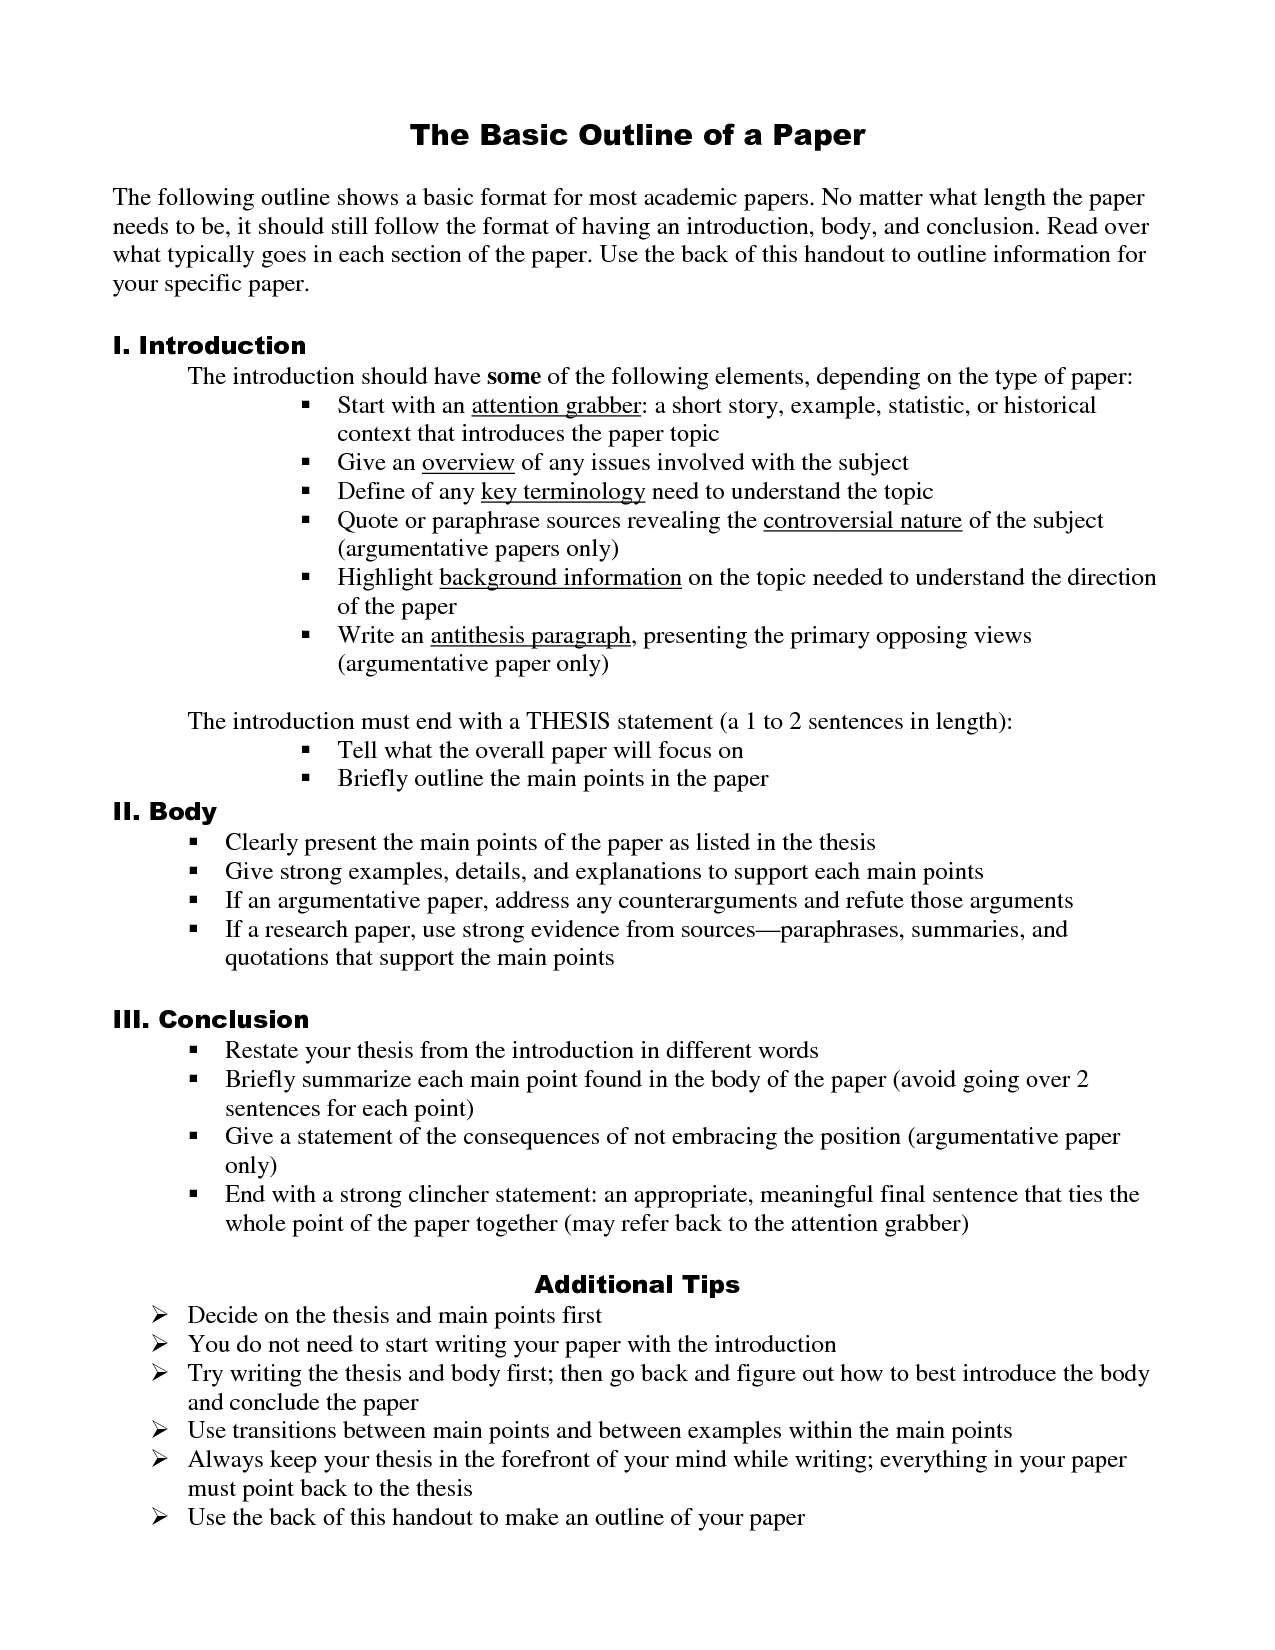 How to write a reflective paper outline Top marks homework help N ru sample  of argumentative